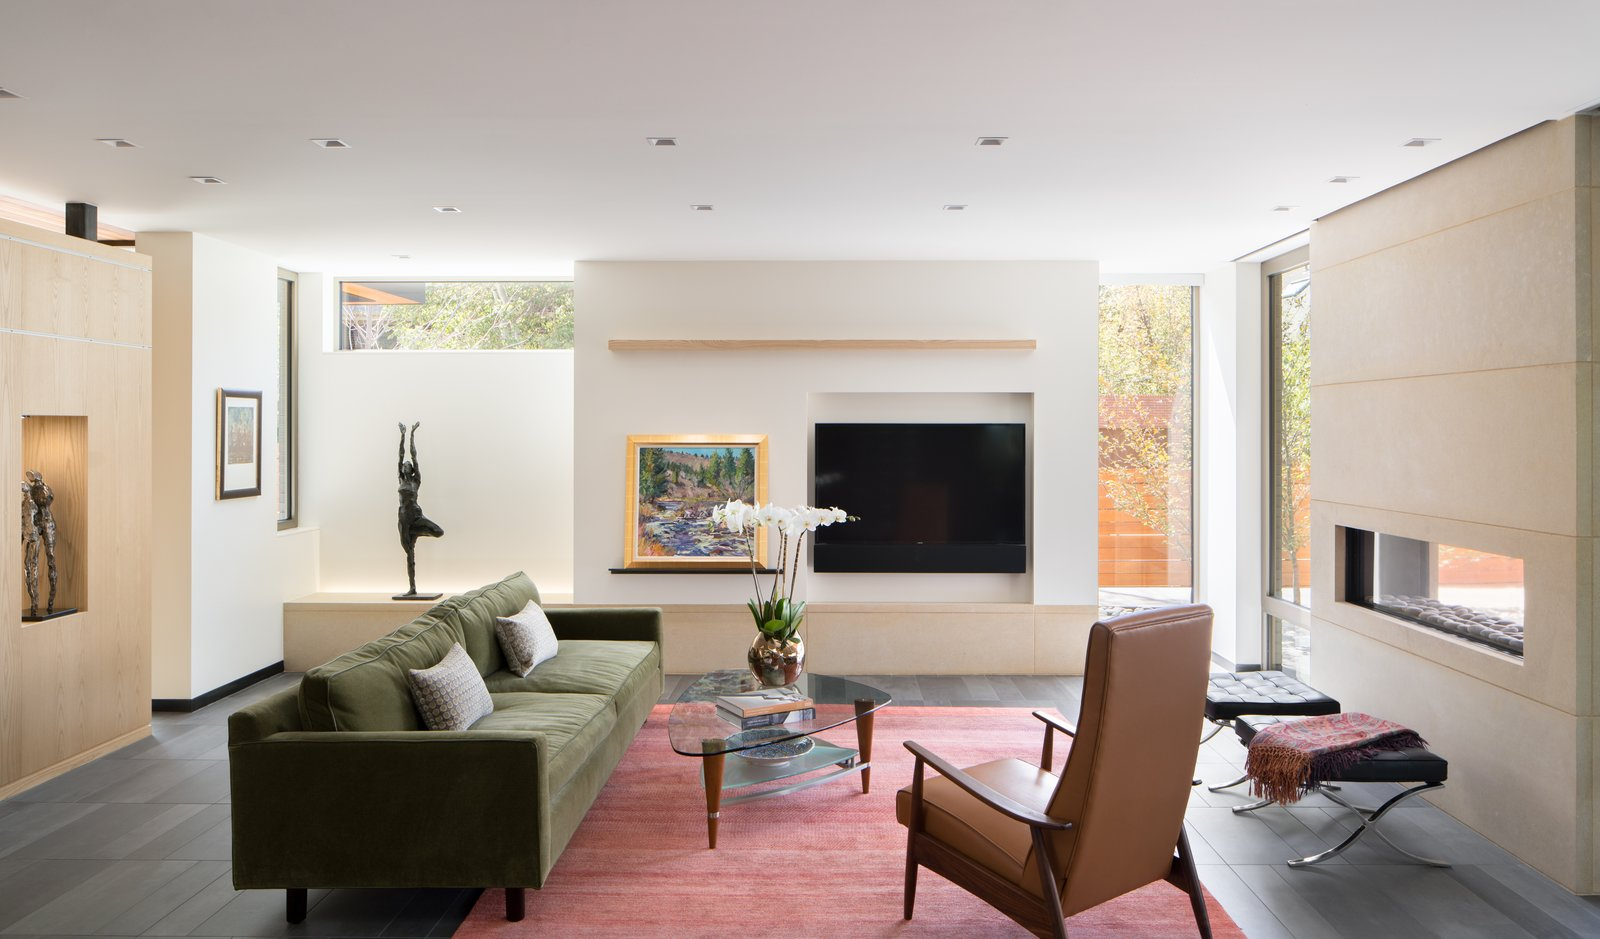 Living, Ottomans, Bench, Sofa, Chair, Shelves, Ceiling, Porcelain Tile, Recessed, Accent, and Two-Sided Living Room  Best Living Porcelain Tile Ottomans Photos from the Duncan Residence